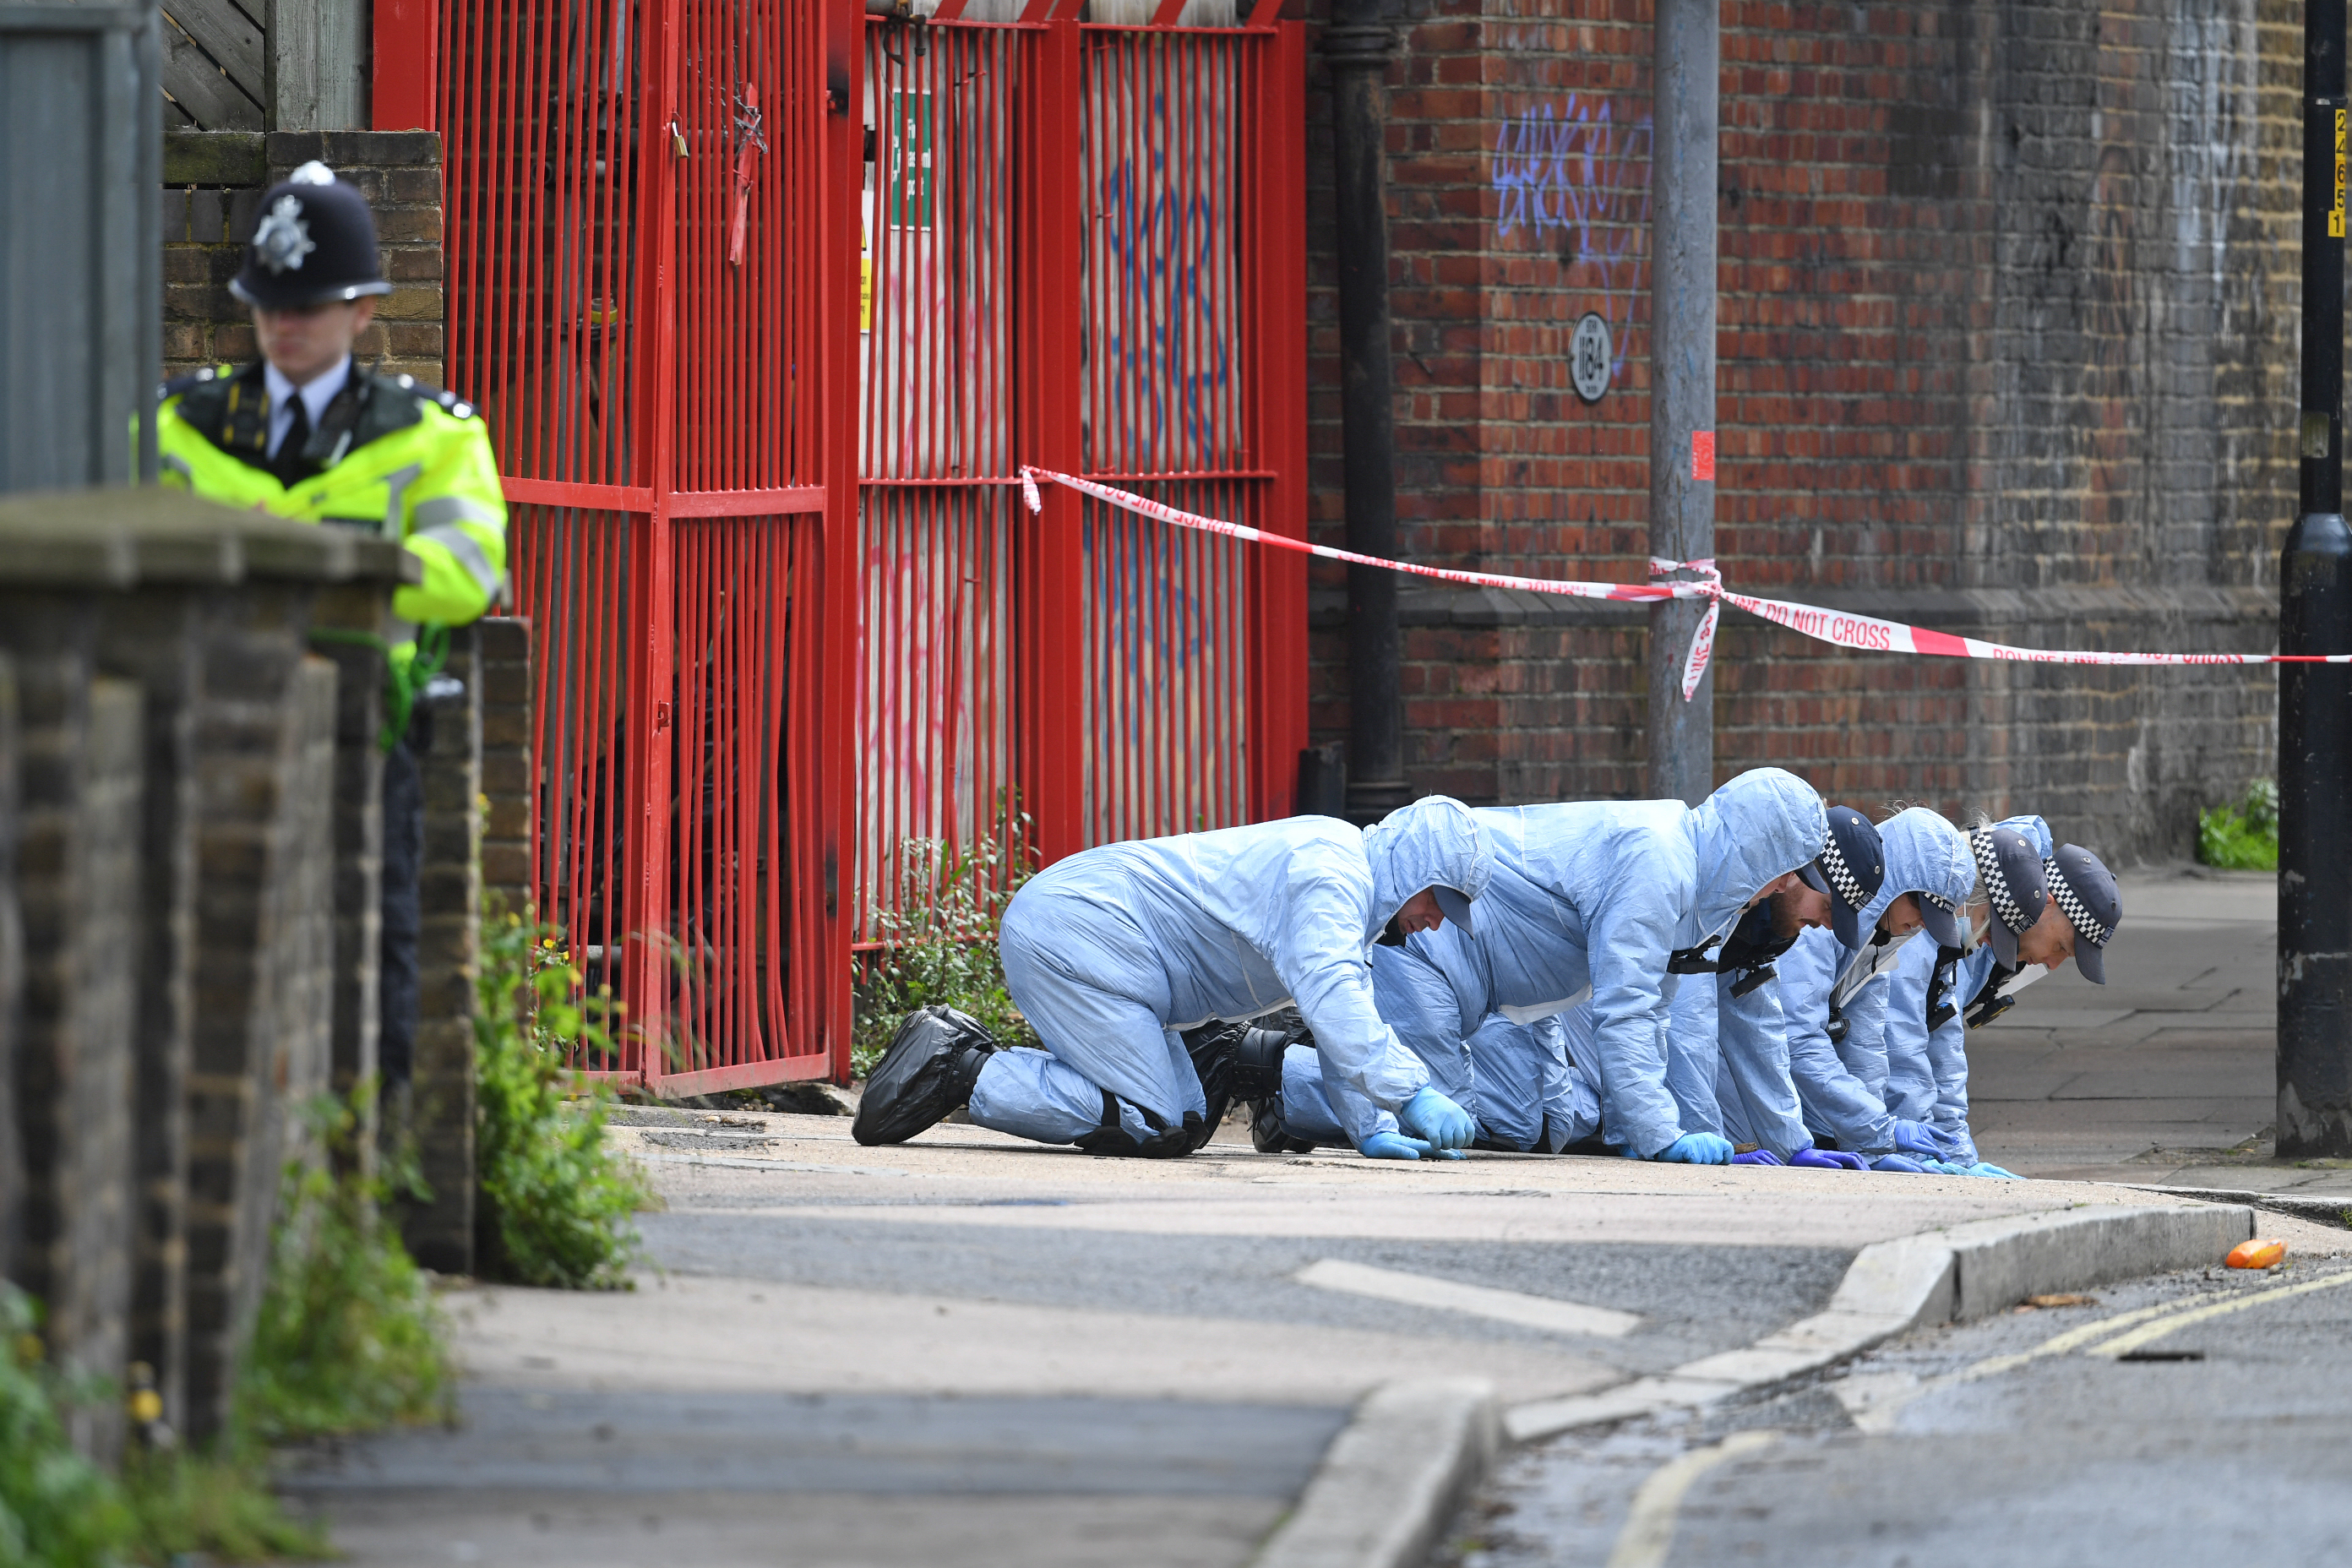 <p>Police forensic officers search a street in Peckham, southeast London, close to where black equal rights activist and mother-of-three Sasha Johnson was shot in the head during the early hours of Sunday. Picture date: Monday May 24, 2021.</p>